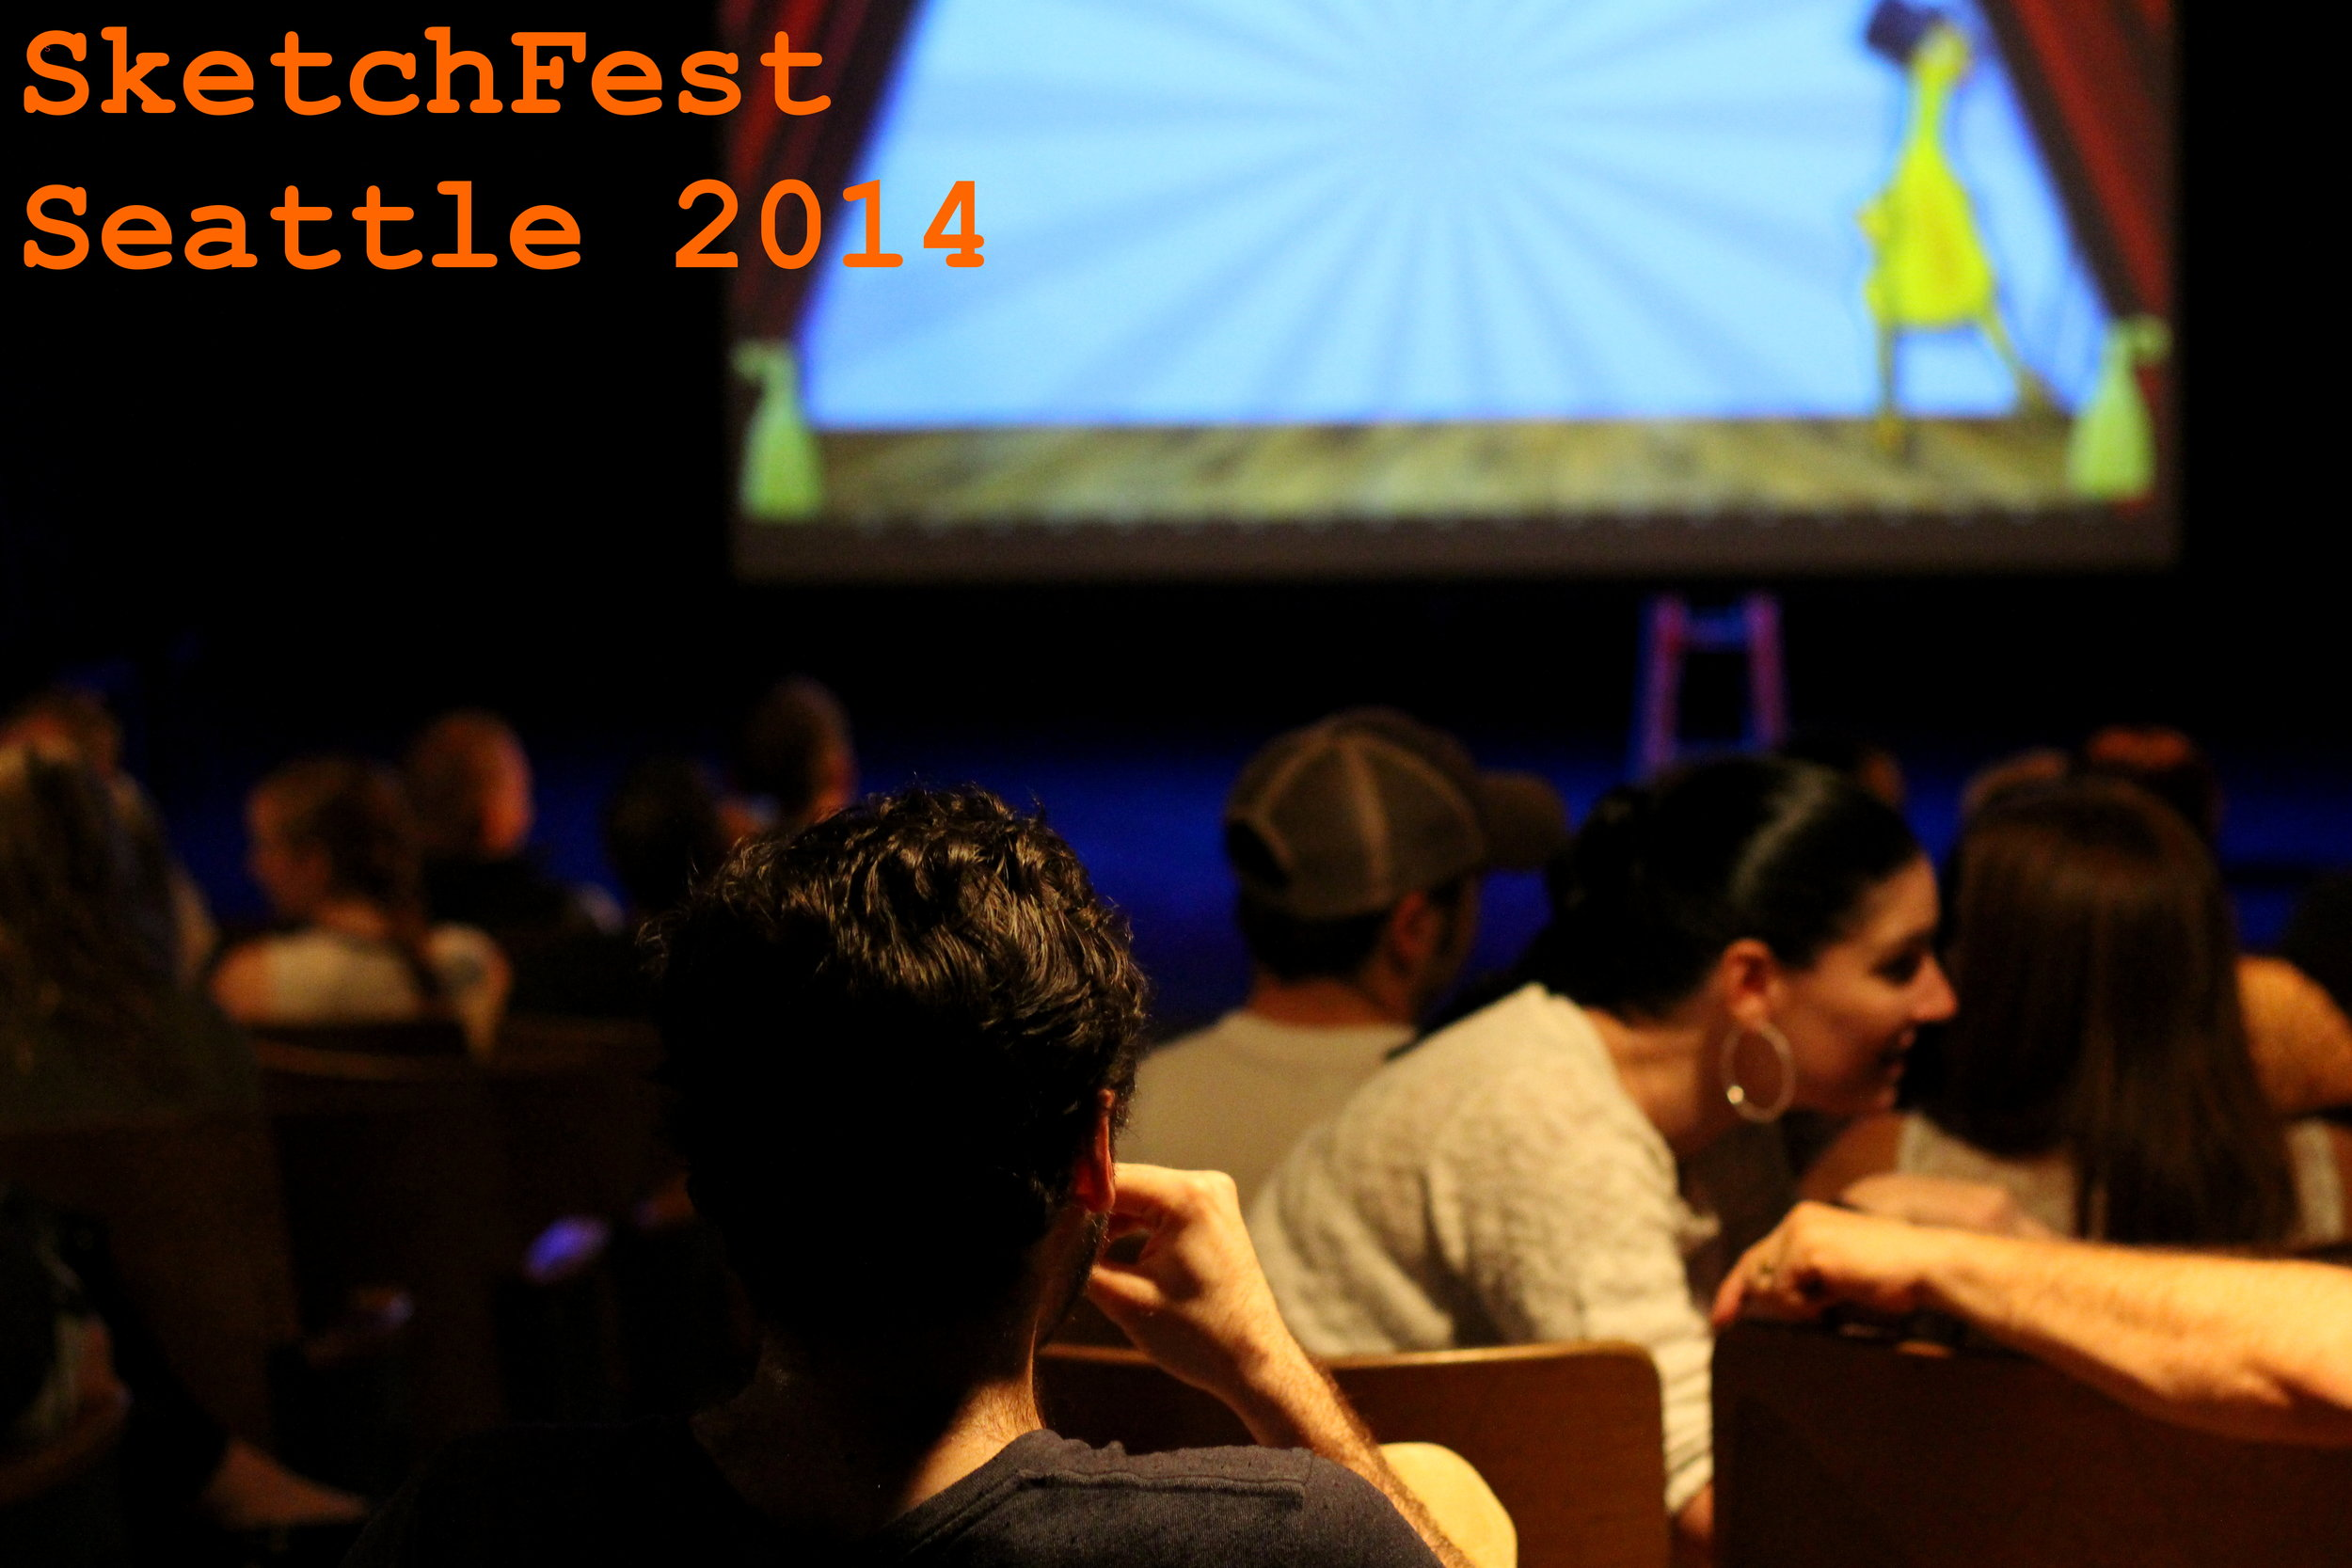 Seattle Sketchfest: 2014